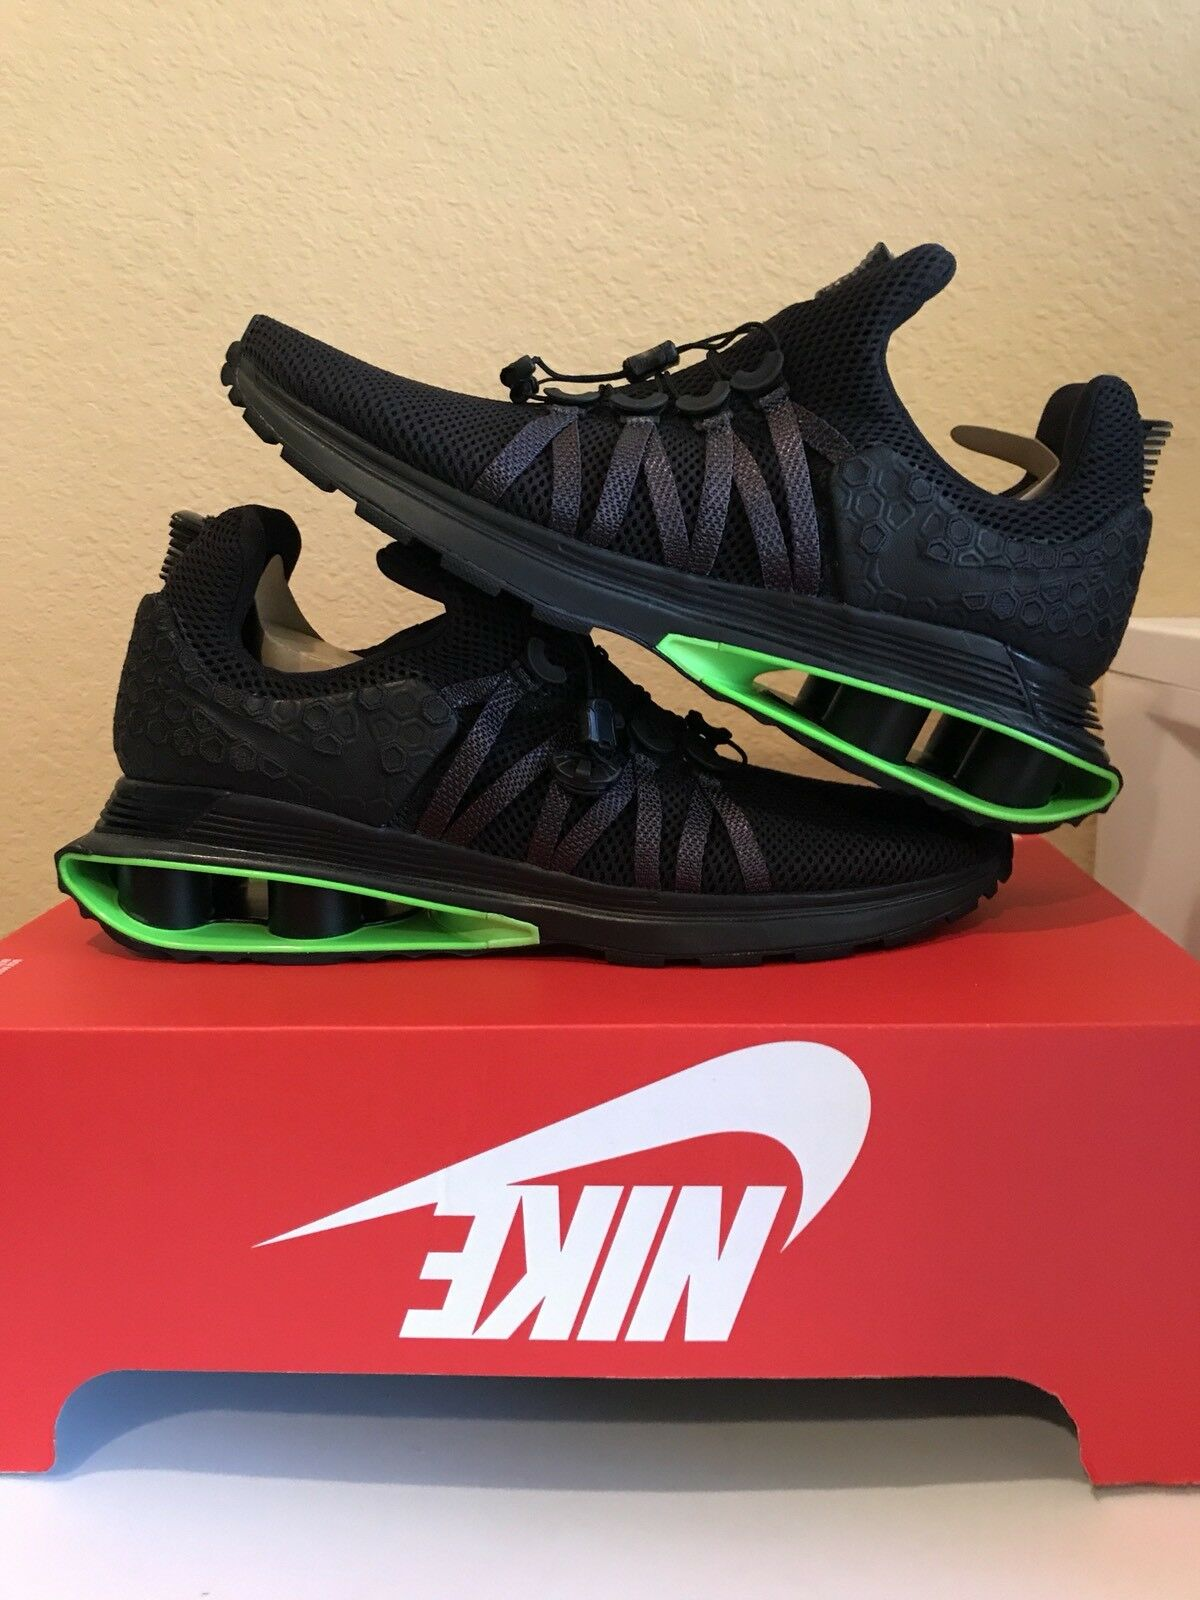 new styles ff75a 9fc27 real jaune noir vert nike shox r3 leather nike chaussures 9c69a 703f7  sale nike  shox gravité luxe noir noir vert gravité grève hommes 12 ar1470 003 taille  ...